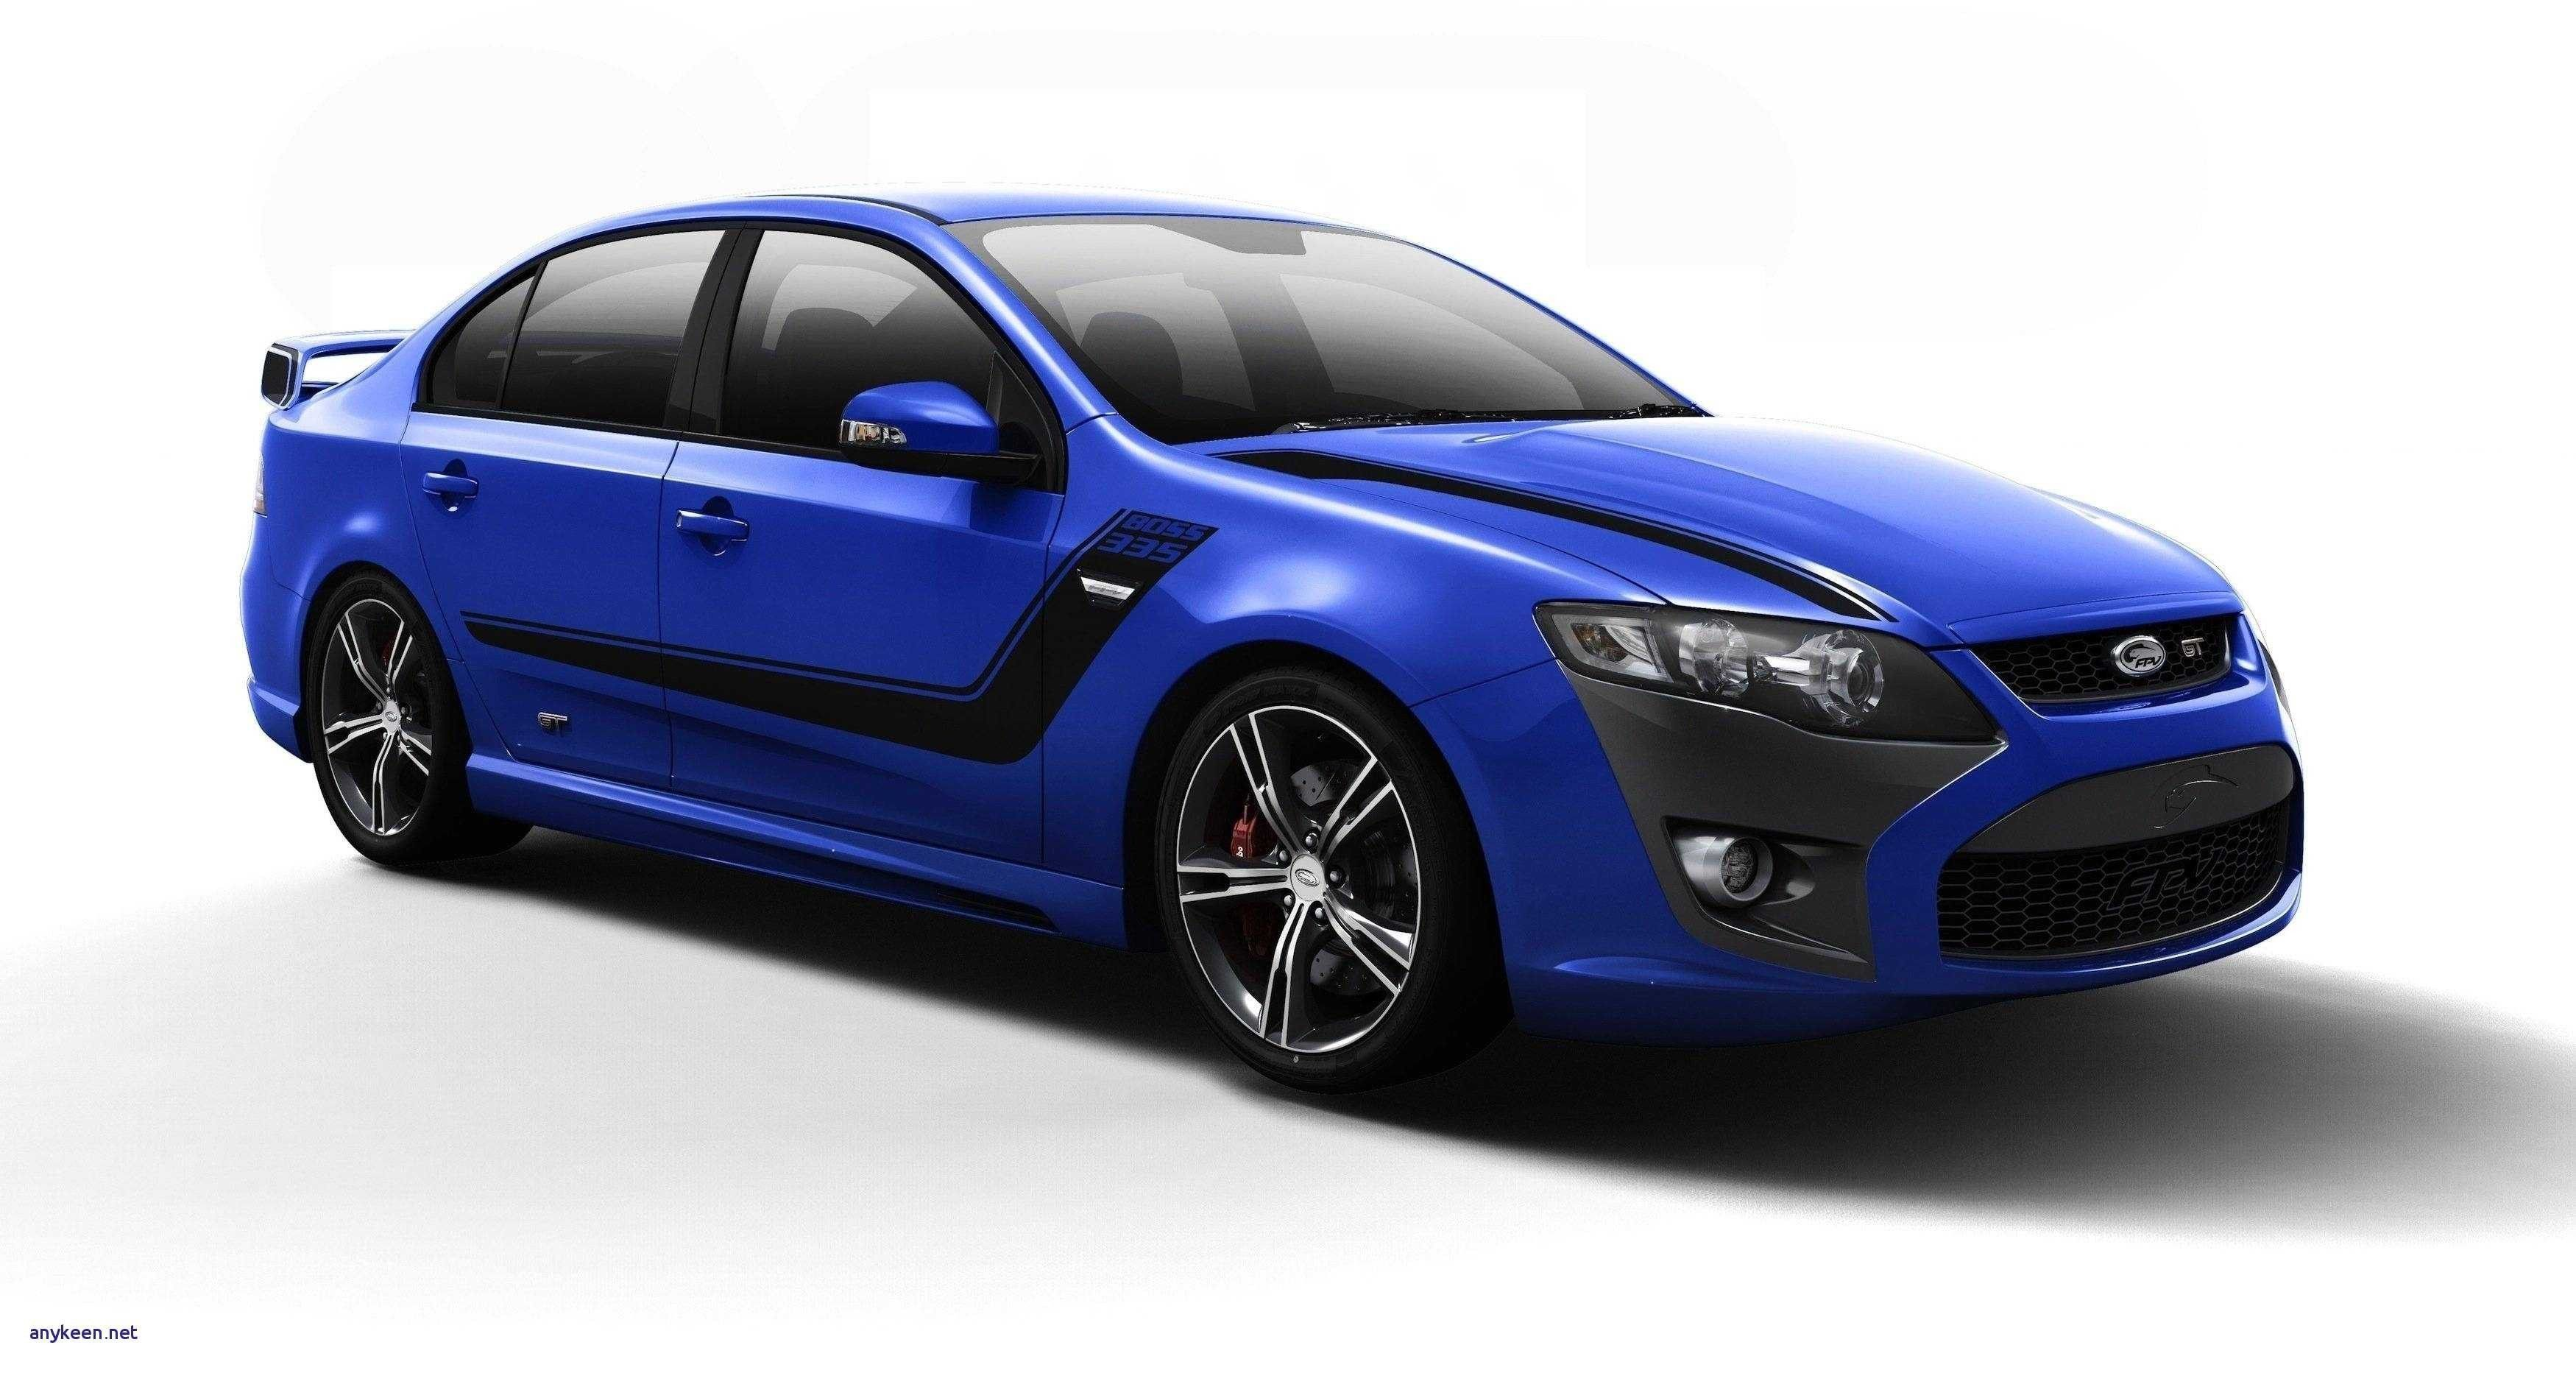 88 The Best 2019 Ford Falcon Xr8 Gt Pictures